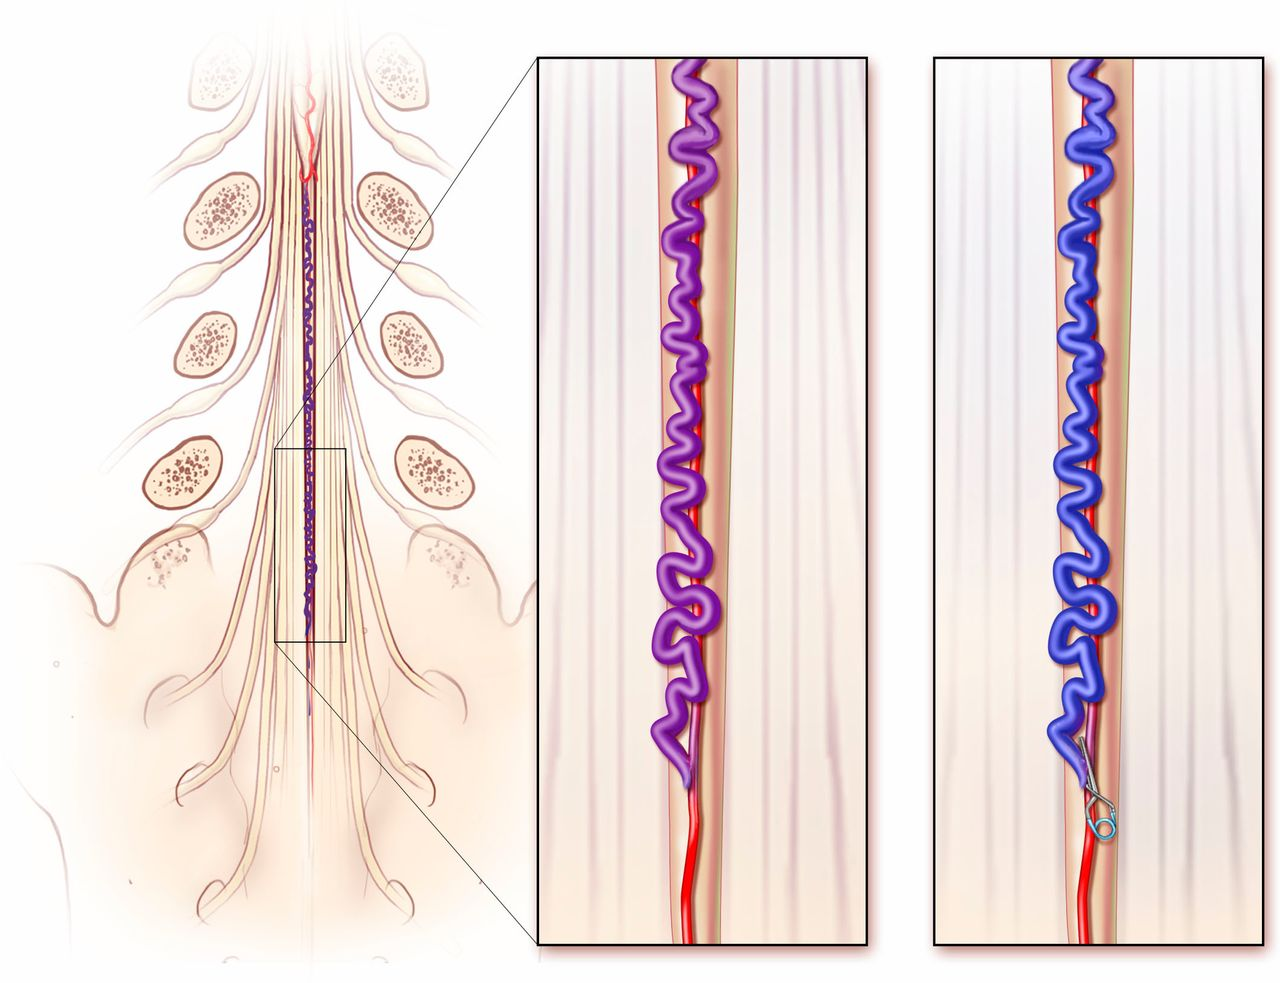 Arteriovenous Fistulae Of The Filum Terminale Journal Of Neurointerventional Surgery Filum terminale (ft) is a structure that is intimately associated with conus medullaris, the most caudal part of the spinal cord. arteriovenous fistulae of the filum